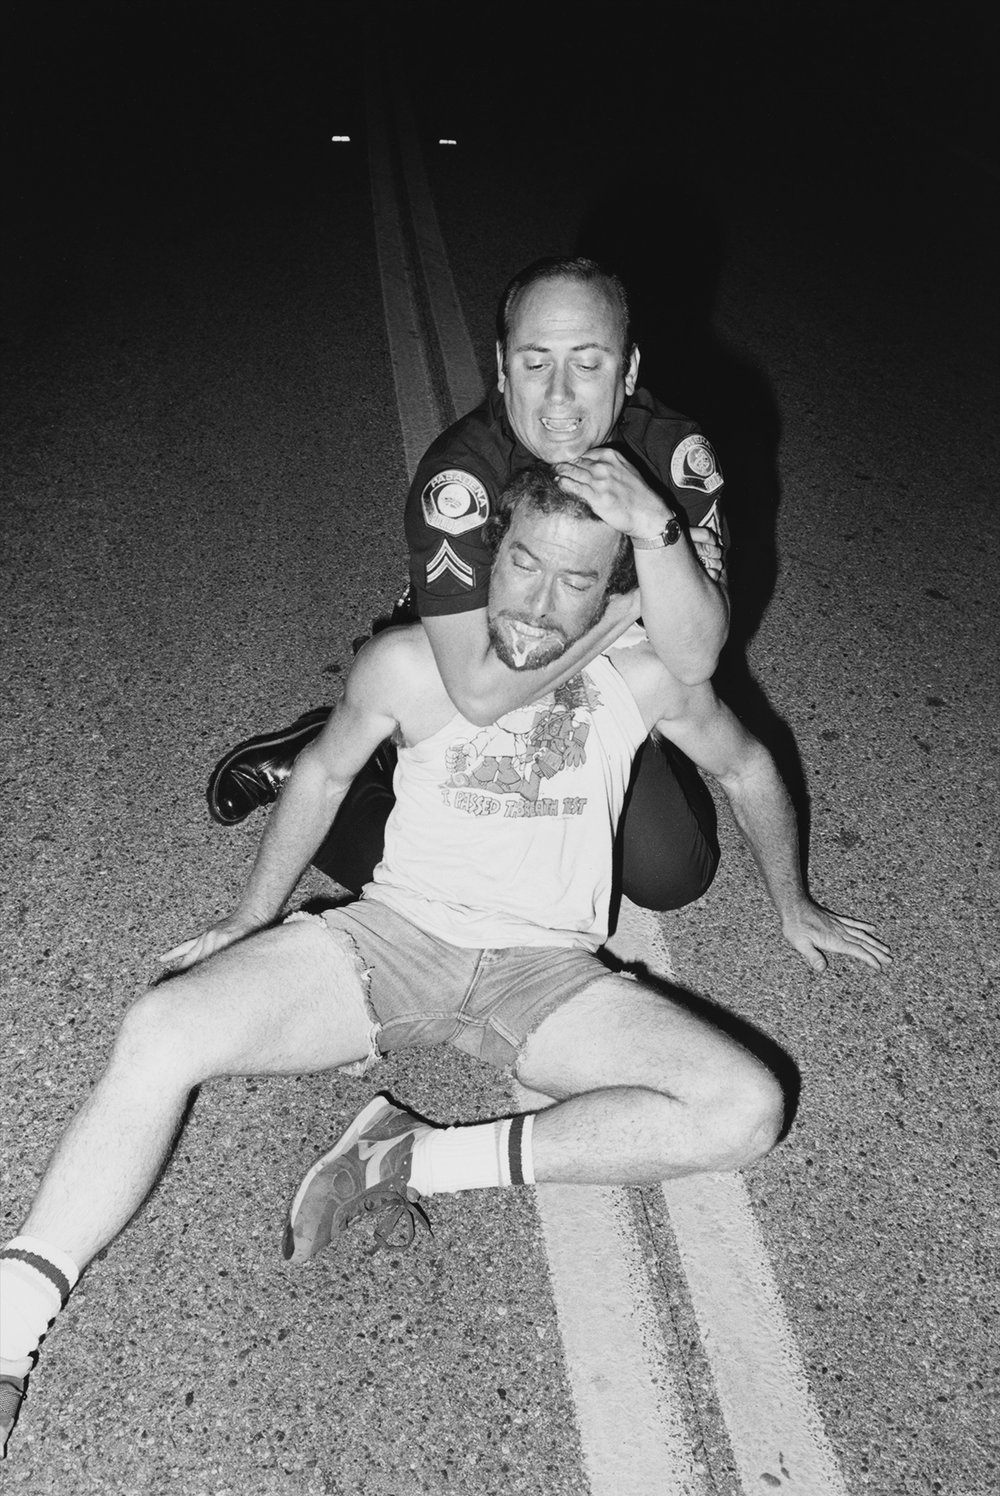 William_Valentine_PasadenaPD_Baroni with PCP suspect_5.jpg